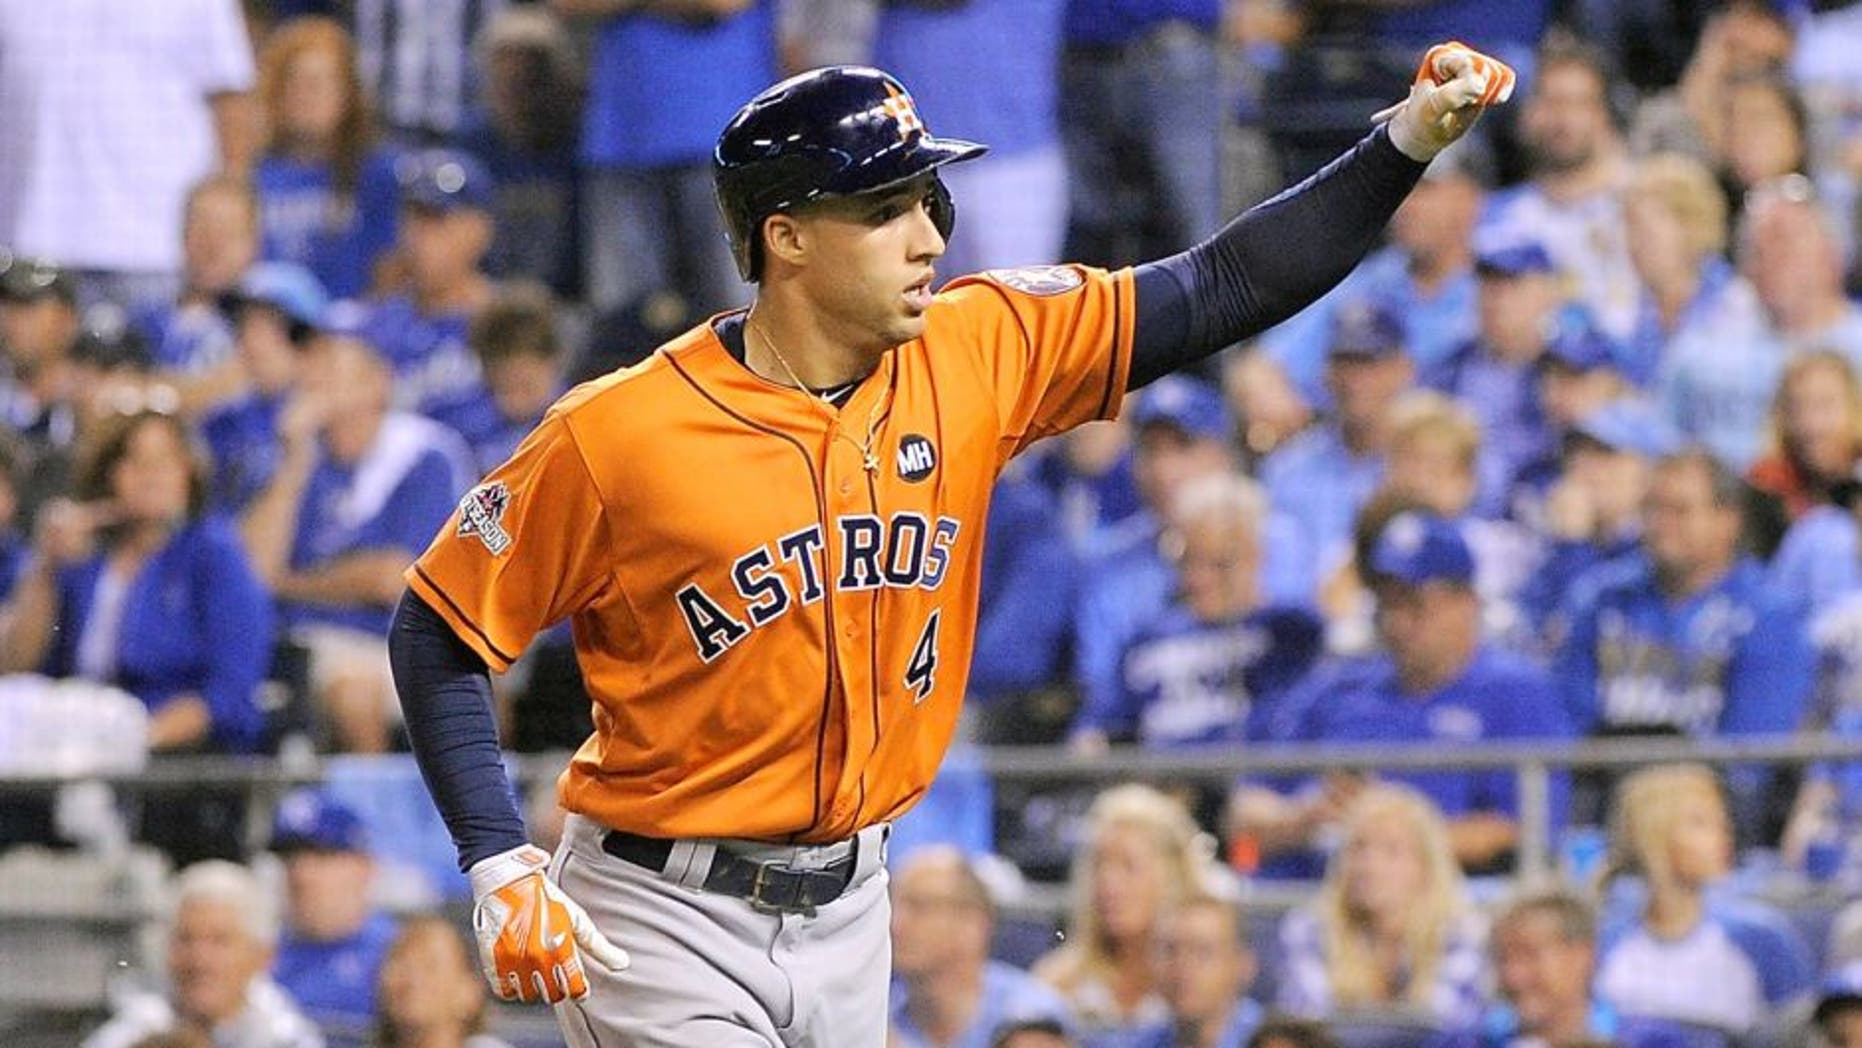 George Springer #4 of the Houston Astros celebrates after hitting a solo home run in the fifth inning against the Kansas City Royals during game one of the American League Division Series at Kauffman Stadium on October 8, 2015 in Kansas City, Missouri. (Photo by Ed Zurga/Getty Images)